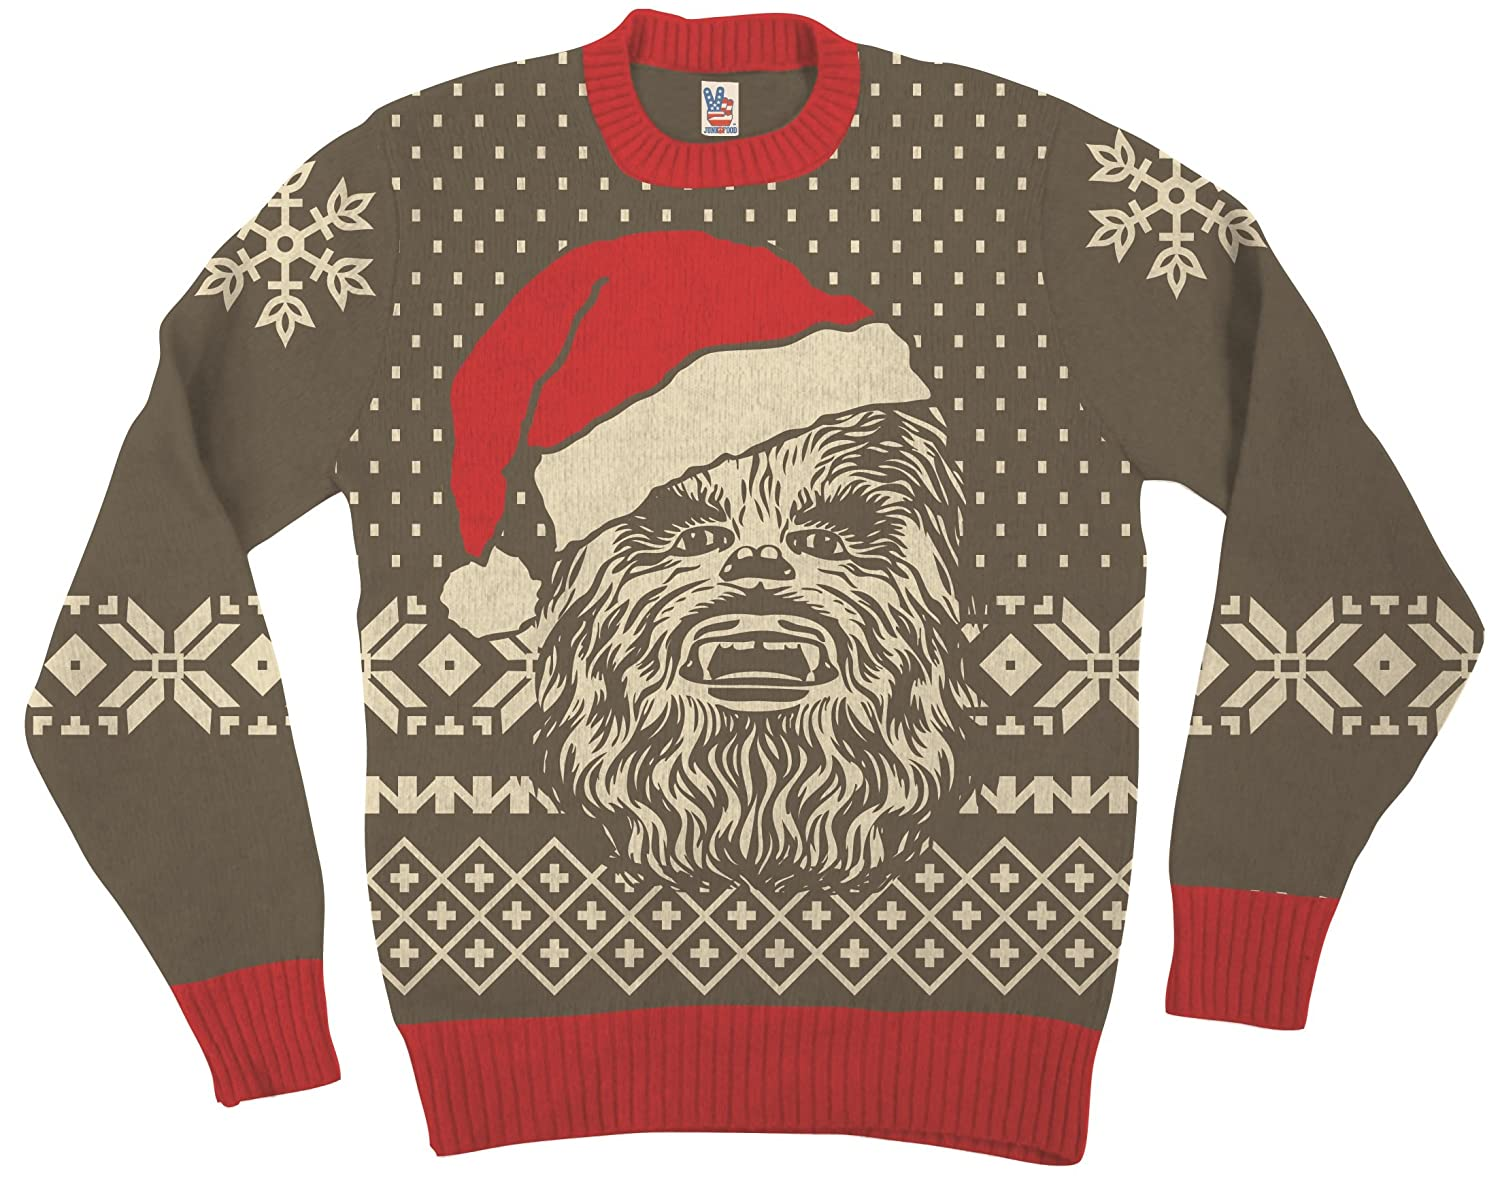 Star Wars Chewbacca Big visage with Père Noël a adultes Marron Laid Noël Sweater